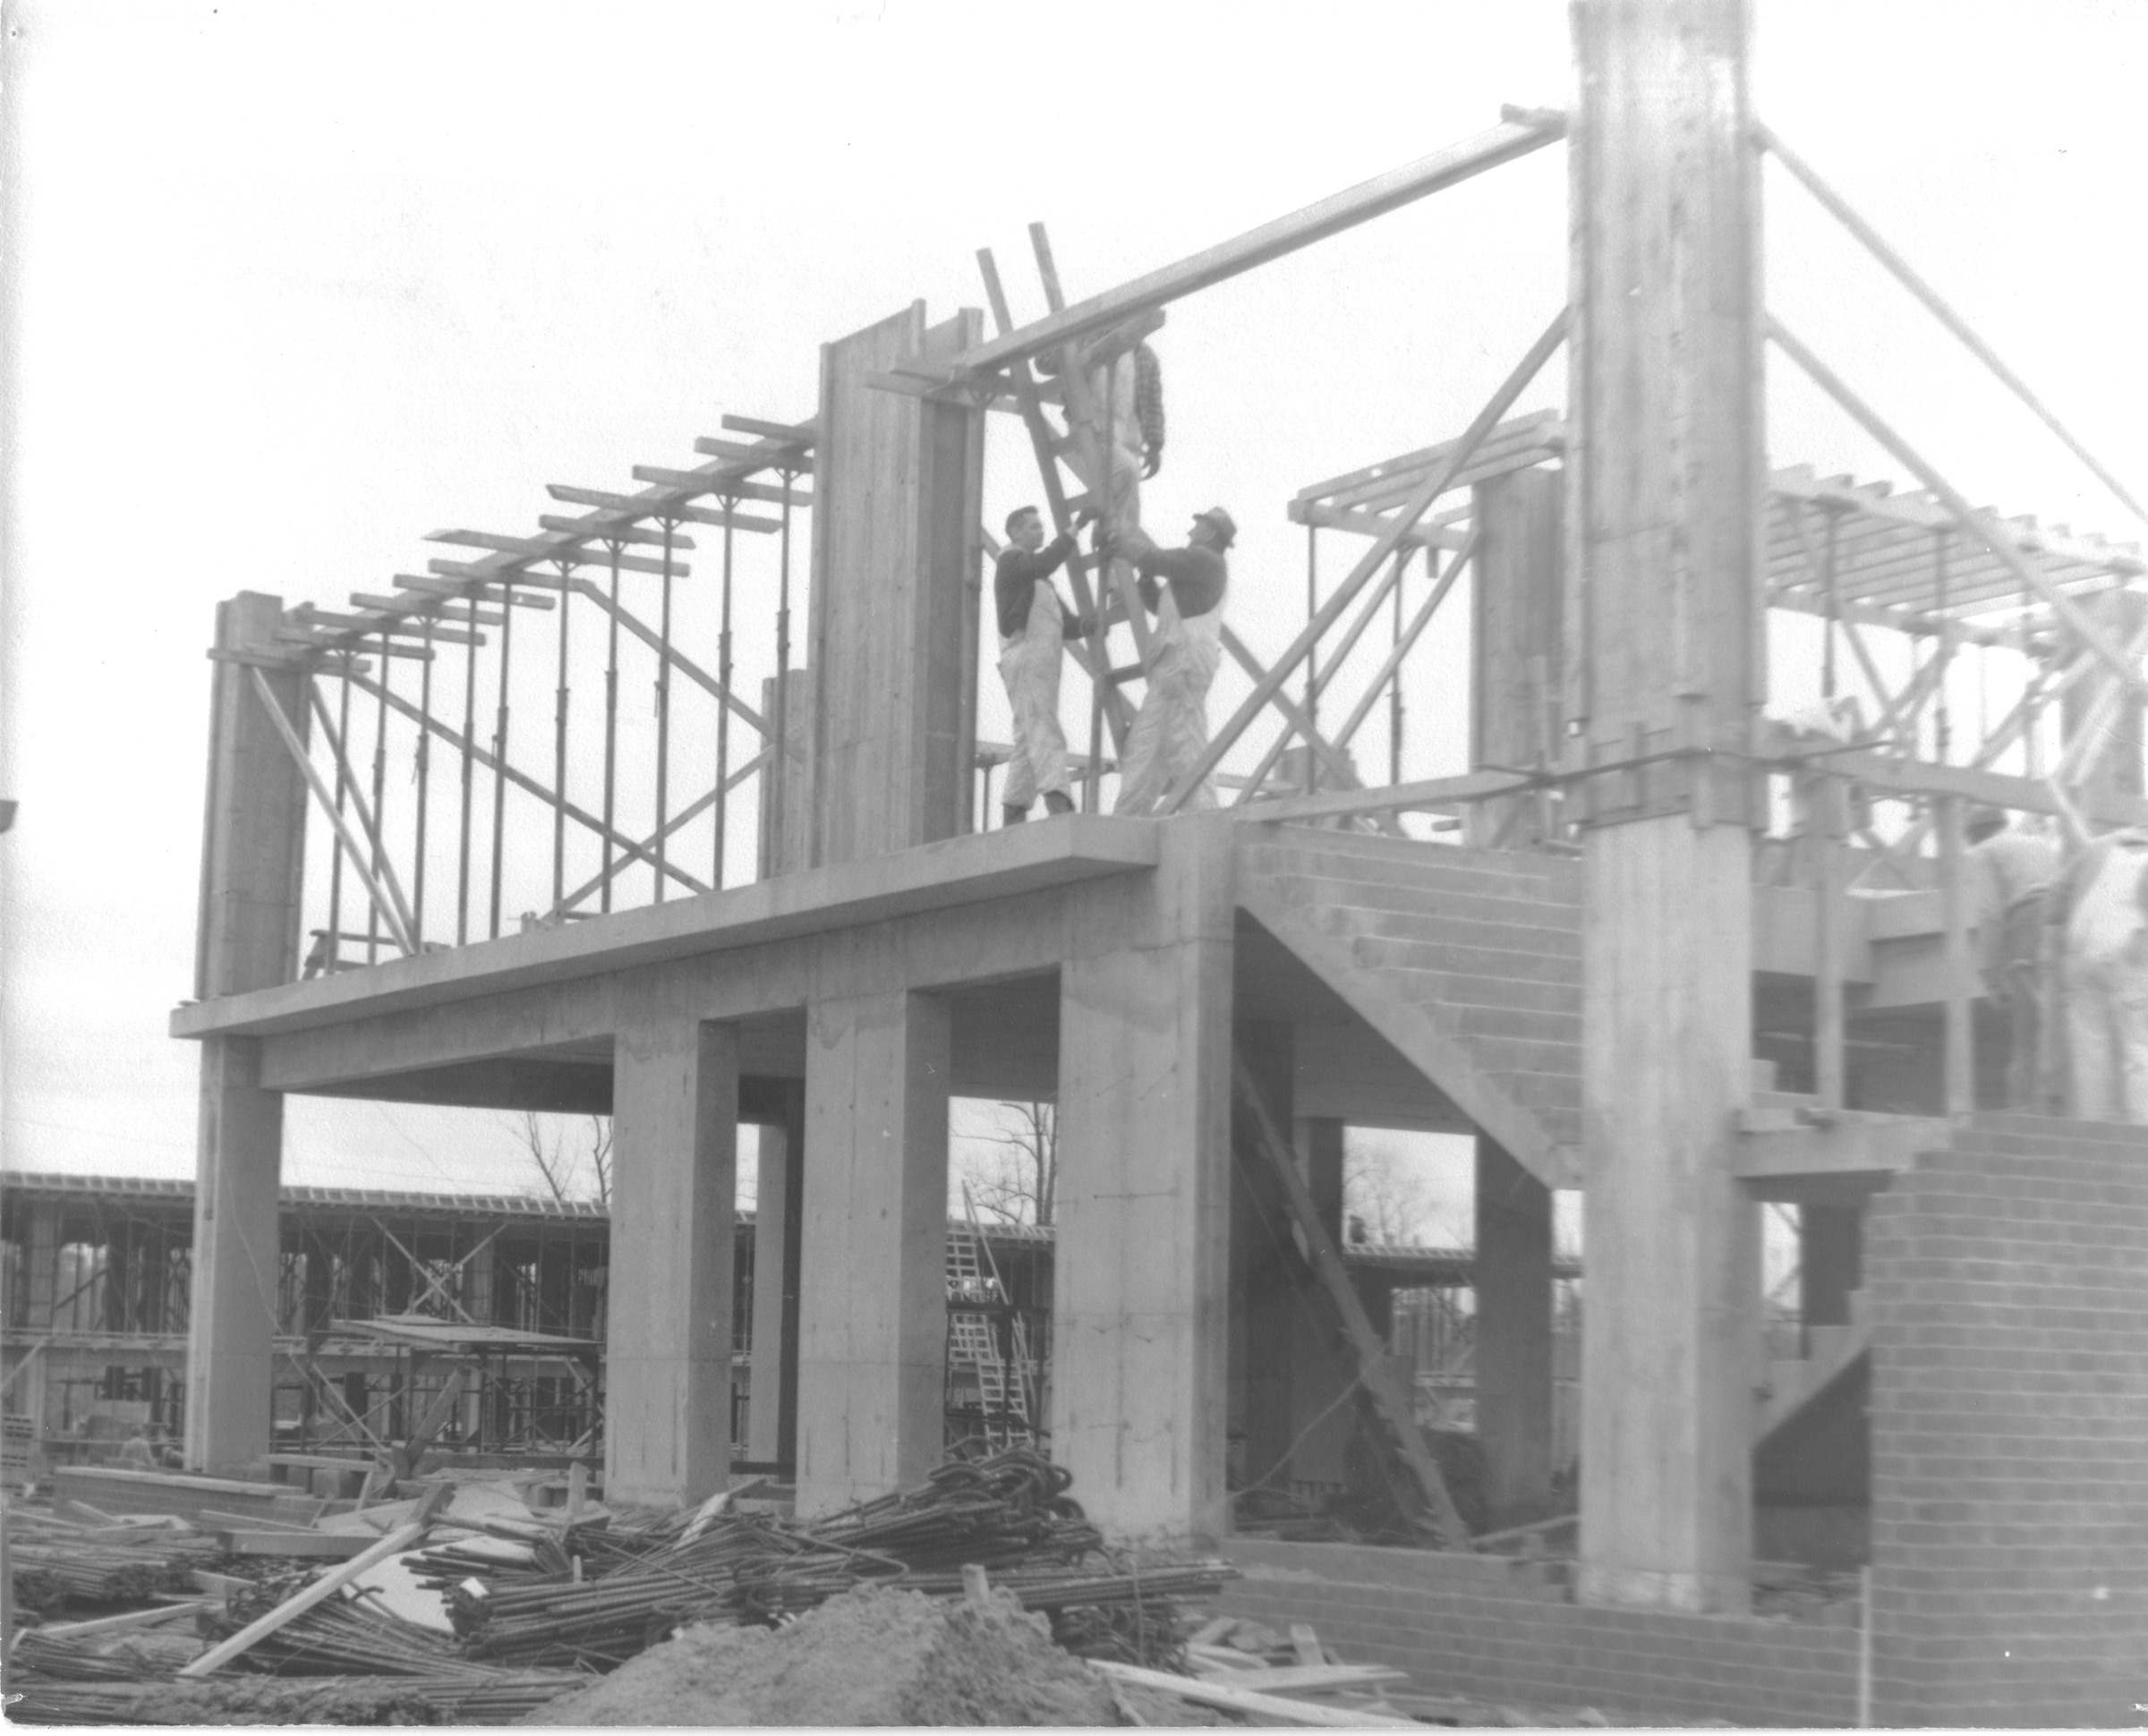 North Building, construction, February 7, 1964